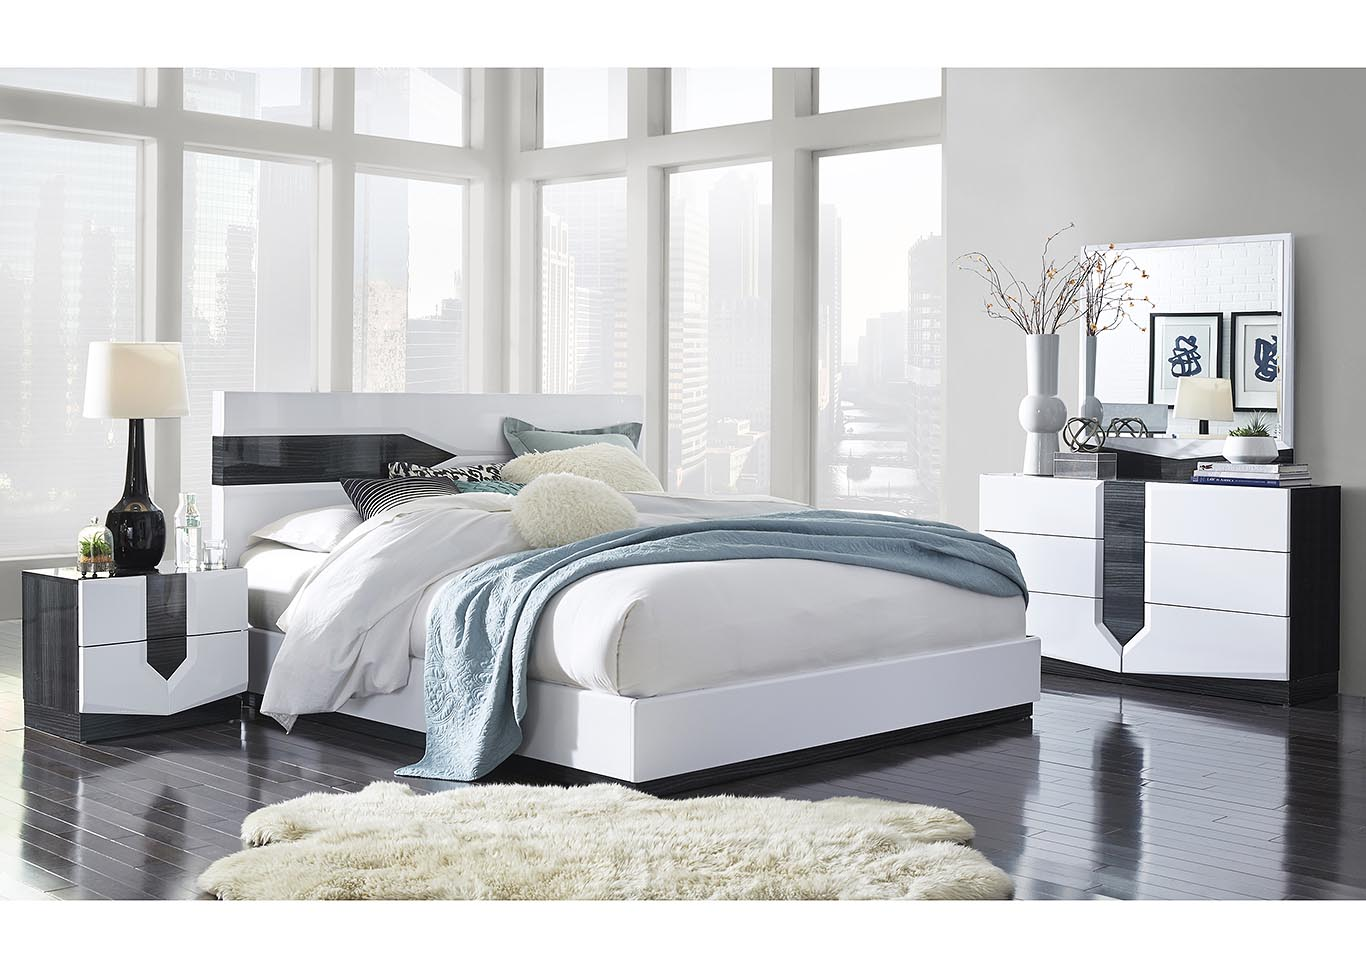 Hudson Grey/White King Platform Bed w/Dresser and Mirror,Global Furniture USA